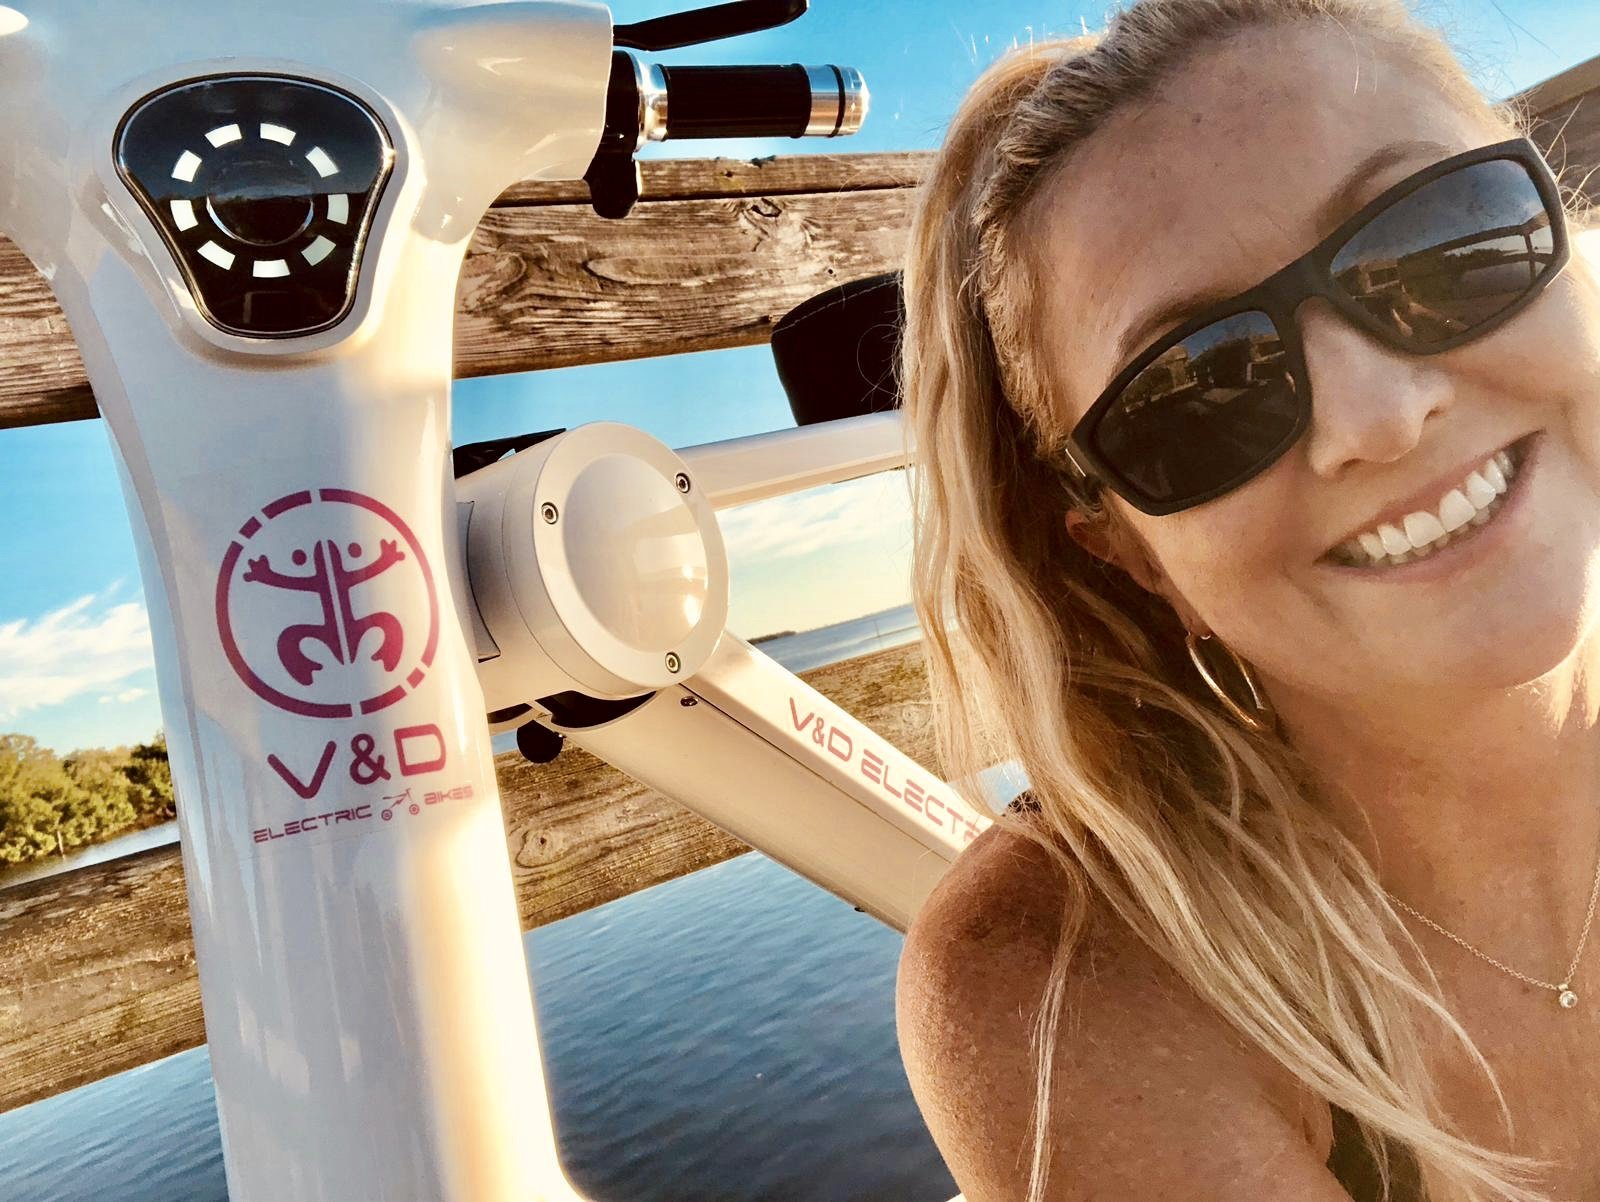 Tracey Smith (Entrepreneur Girl) shows how life is made much easier on the Go-Bike M1. V&D Electric Bikes